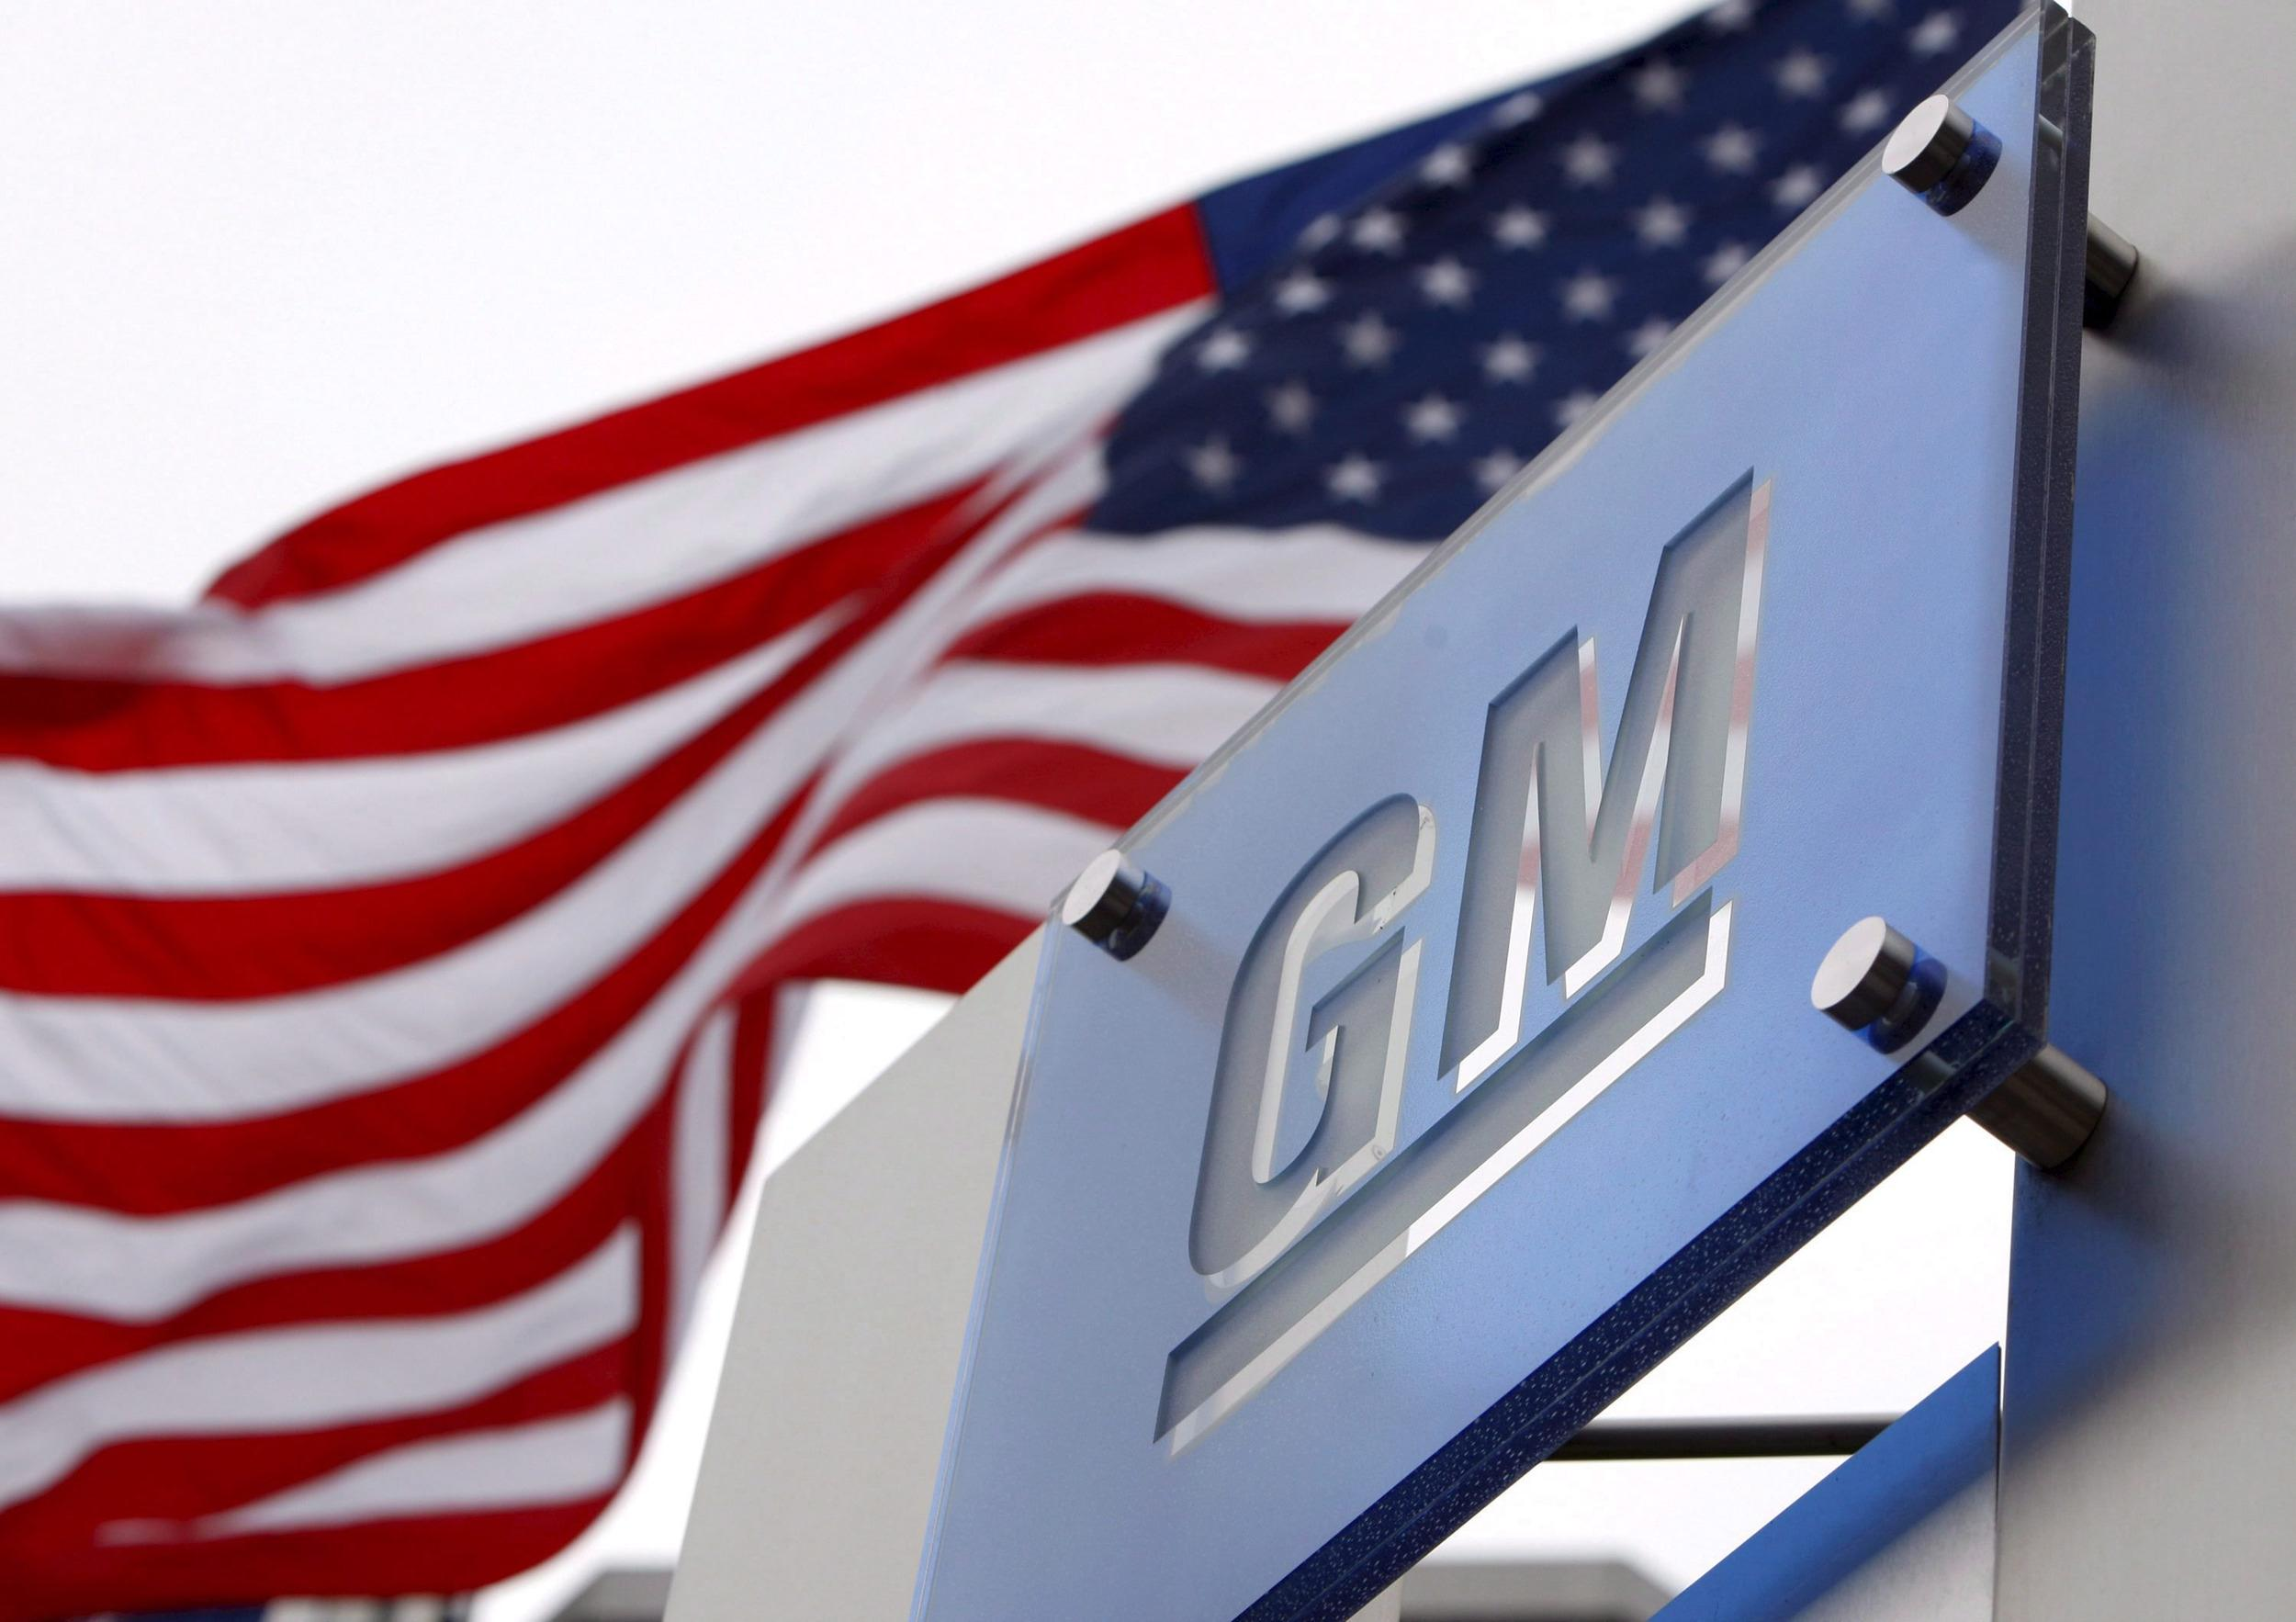 Image: GM is recalling more vehicles